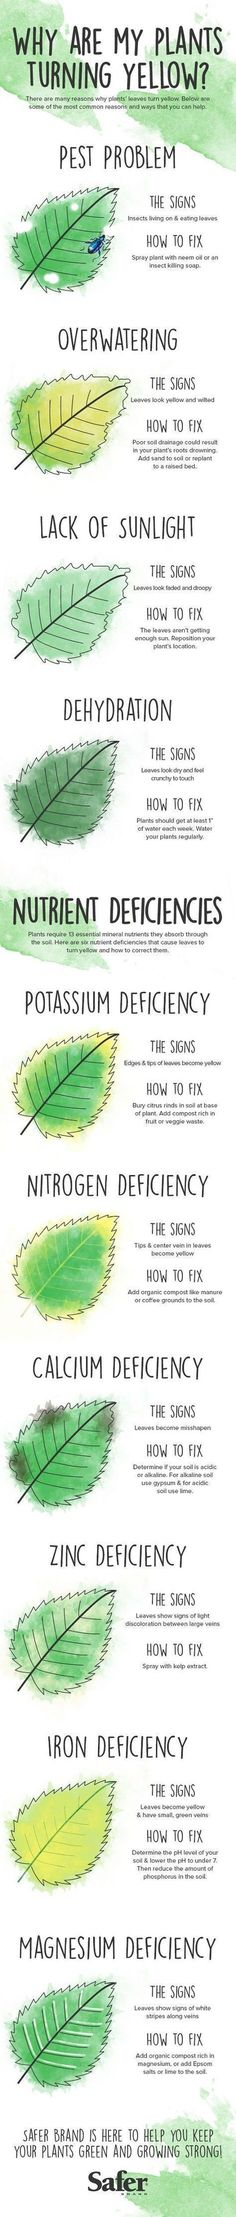 yellowing leavings, dying plants, plants turning yellow, gardening, green thumb, organic gardening, gardening tips, house plant gardening, house plants, plant growing tips, infographics, reader submission, safer brand #hydroponicsinfographic #hydroponicshouseplants #greenhouse #gardeningtips